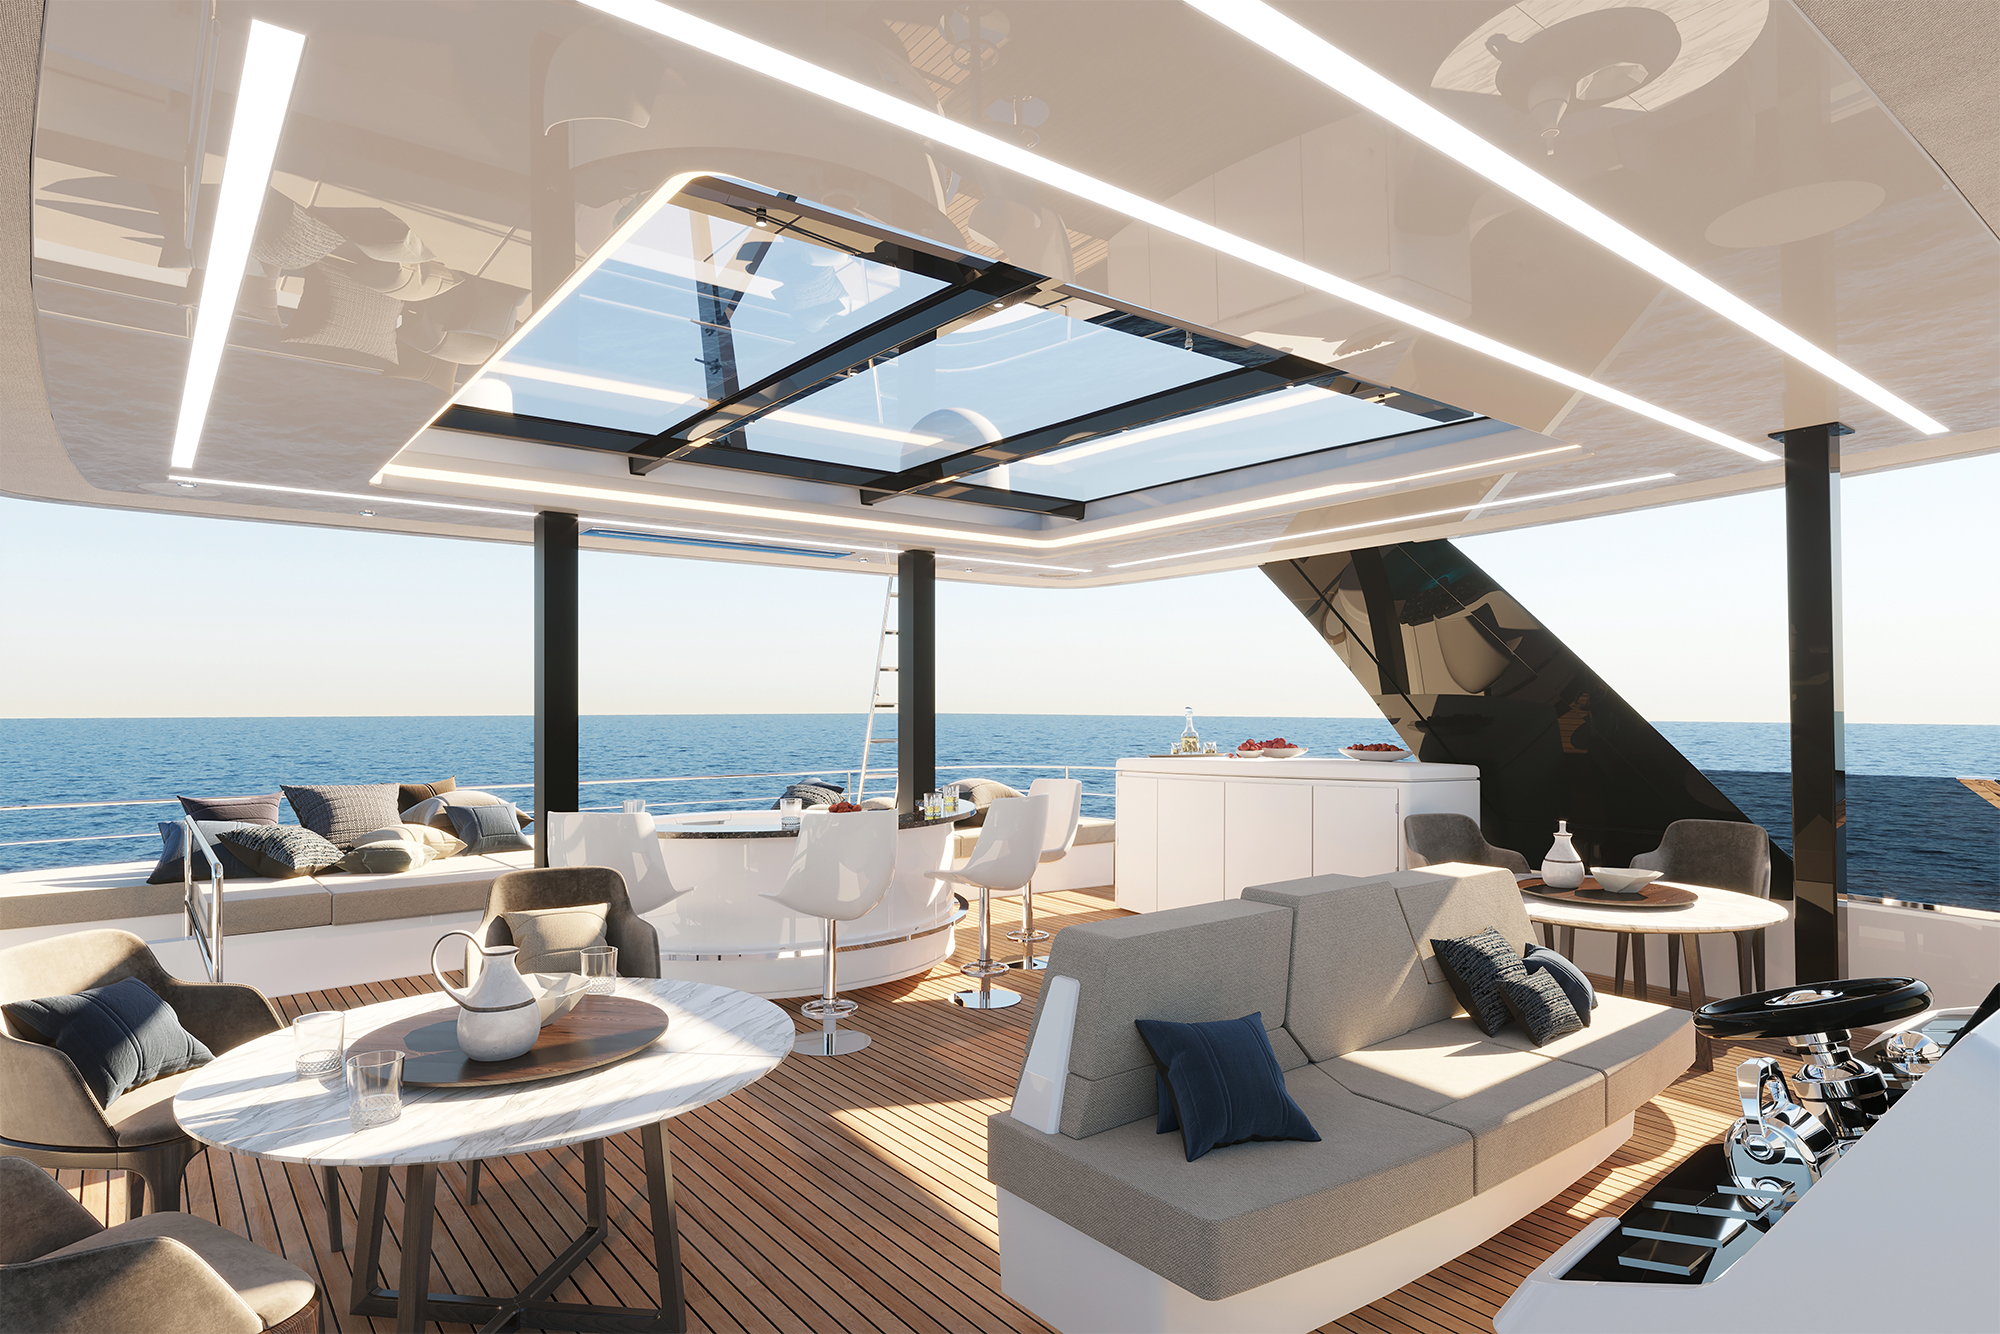 Flybridge of the electric power catamaran 70 Sunreef Power Eco with a helm station in the middle and a bar and a spa pool.